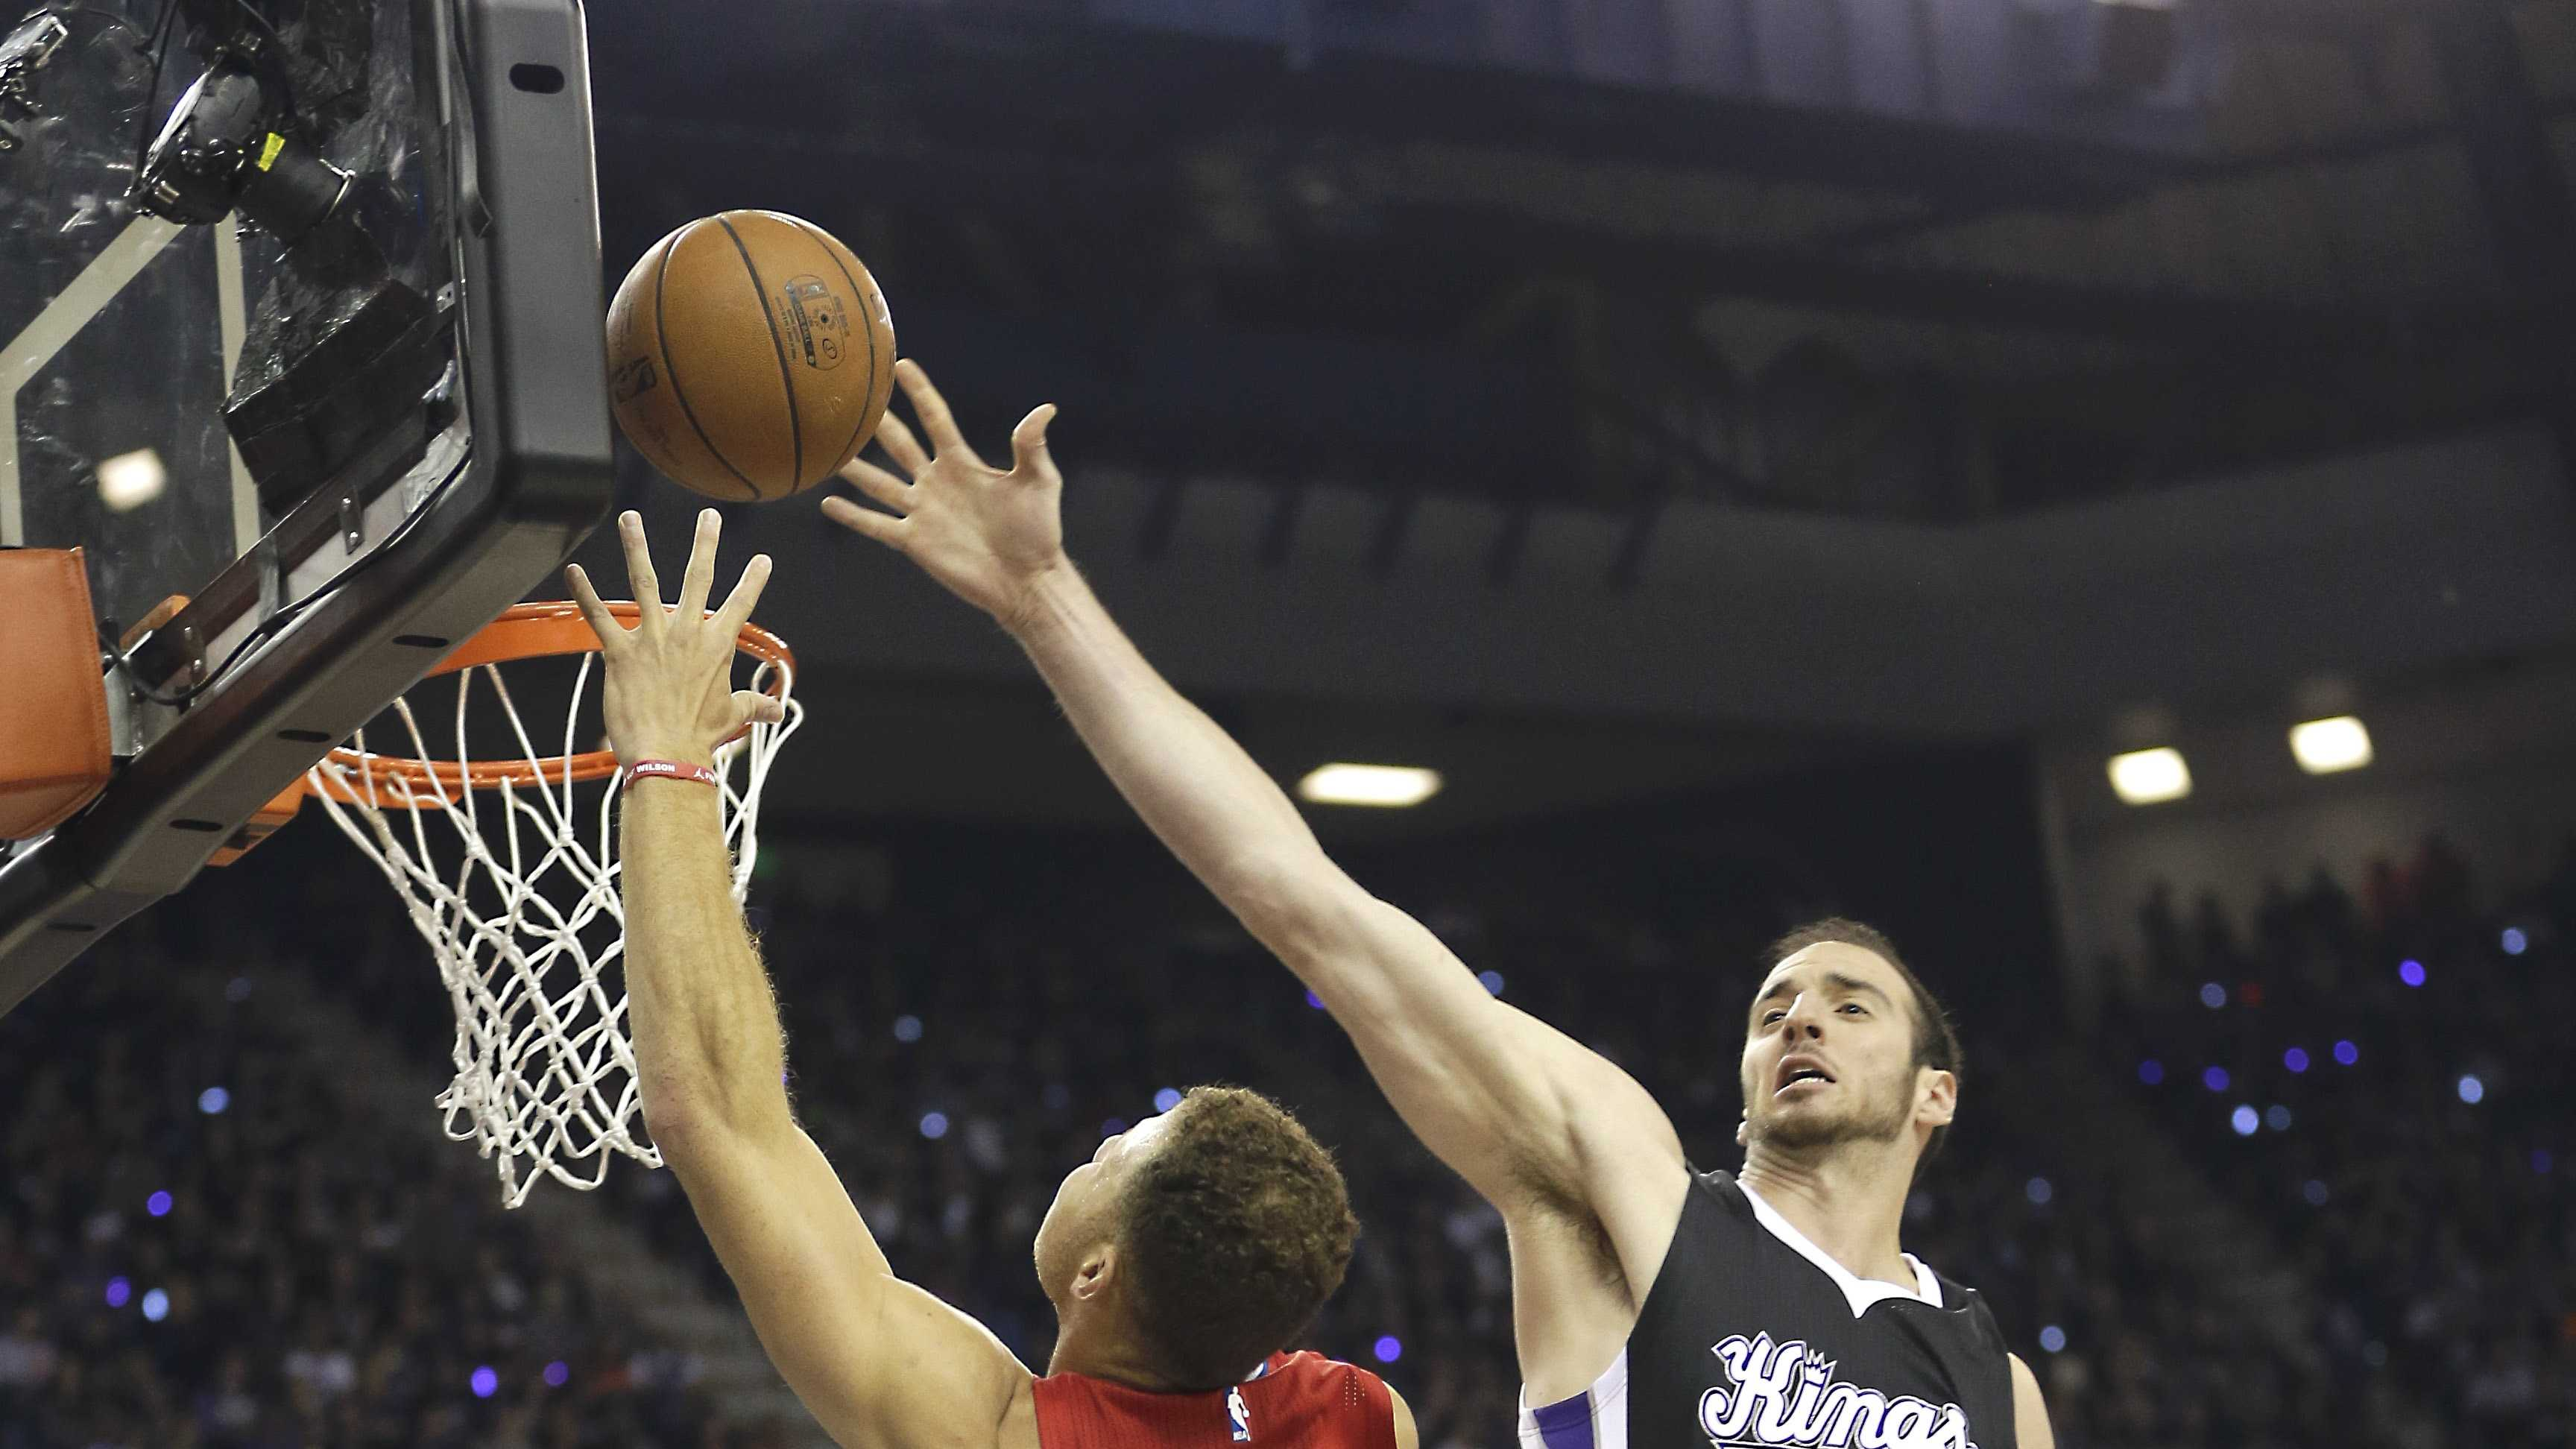 Los Angeles Clippers forward Blake Griffin, left, drives to the basket against Sacramento Kings center Kosta Koufos during the first quarter of an NBA basketball game in Sacramento, Calif., Wednesday, Oct. 28, 2015.